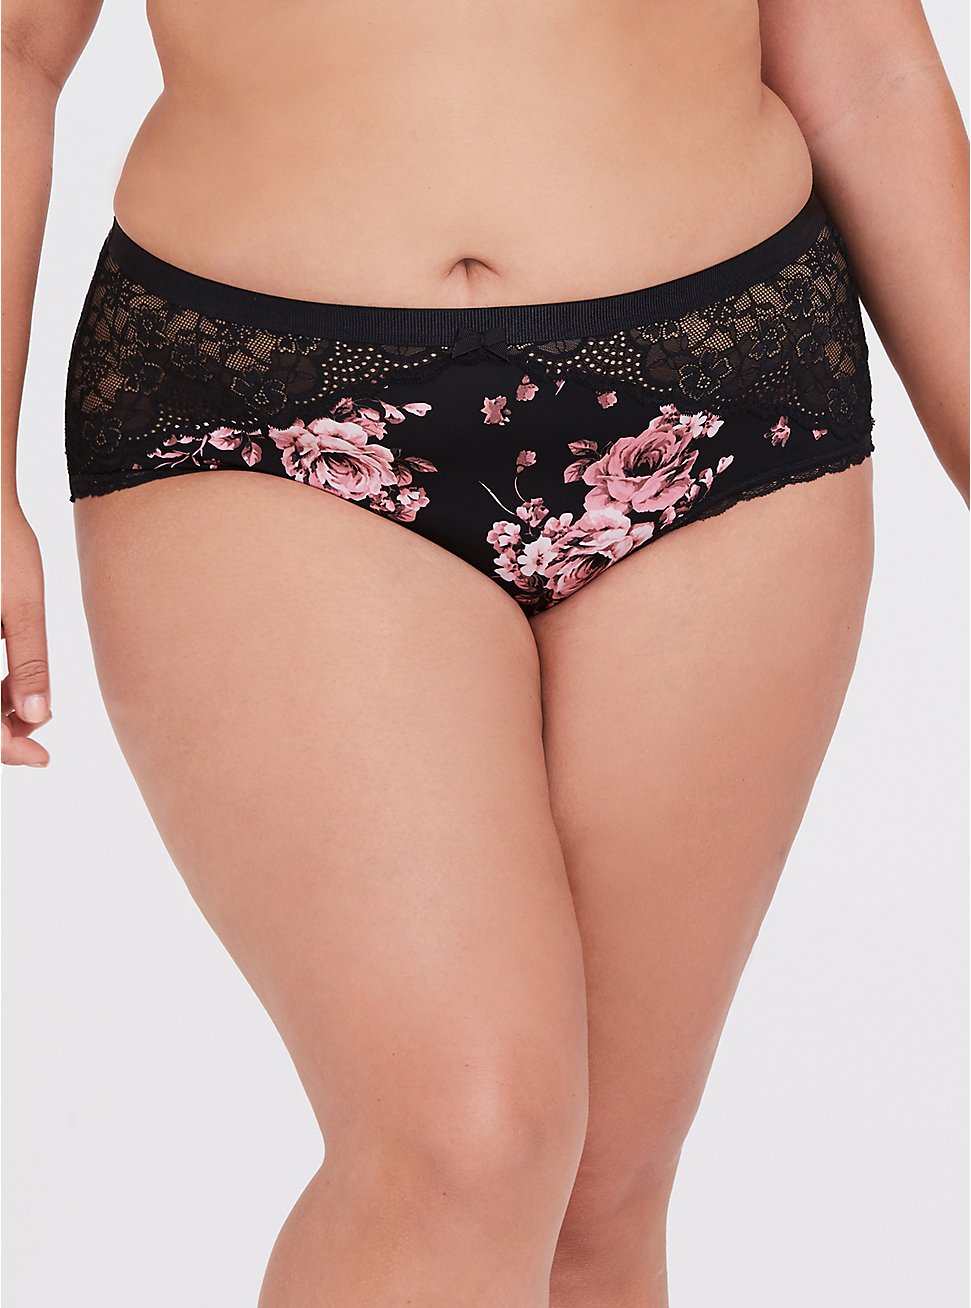 Breast Cancer Awareness - Floral Microfiber & Lace Cheeky Panty, FLORALS-BLACK, hi-res